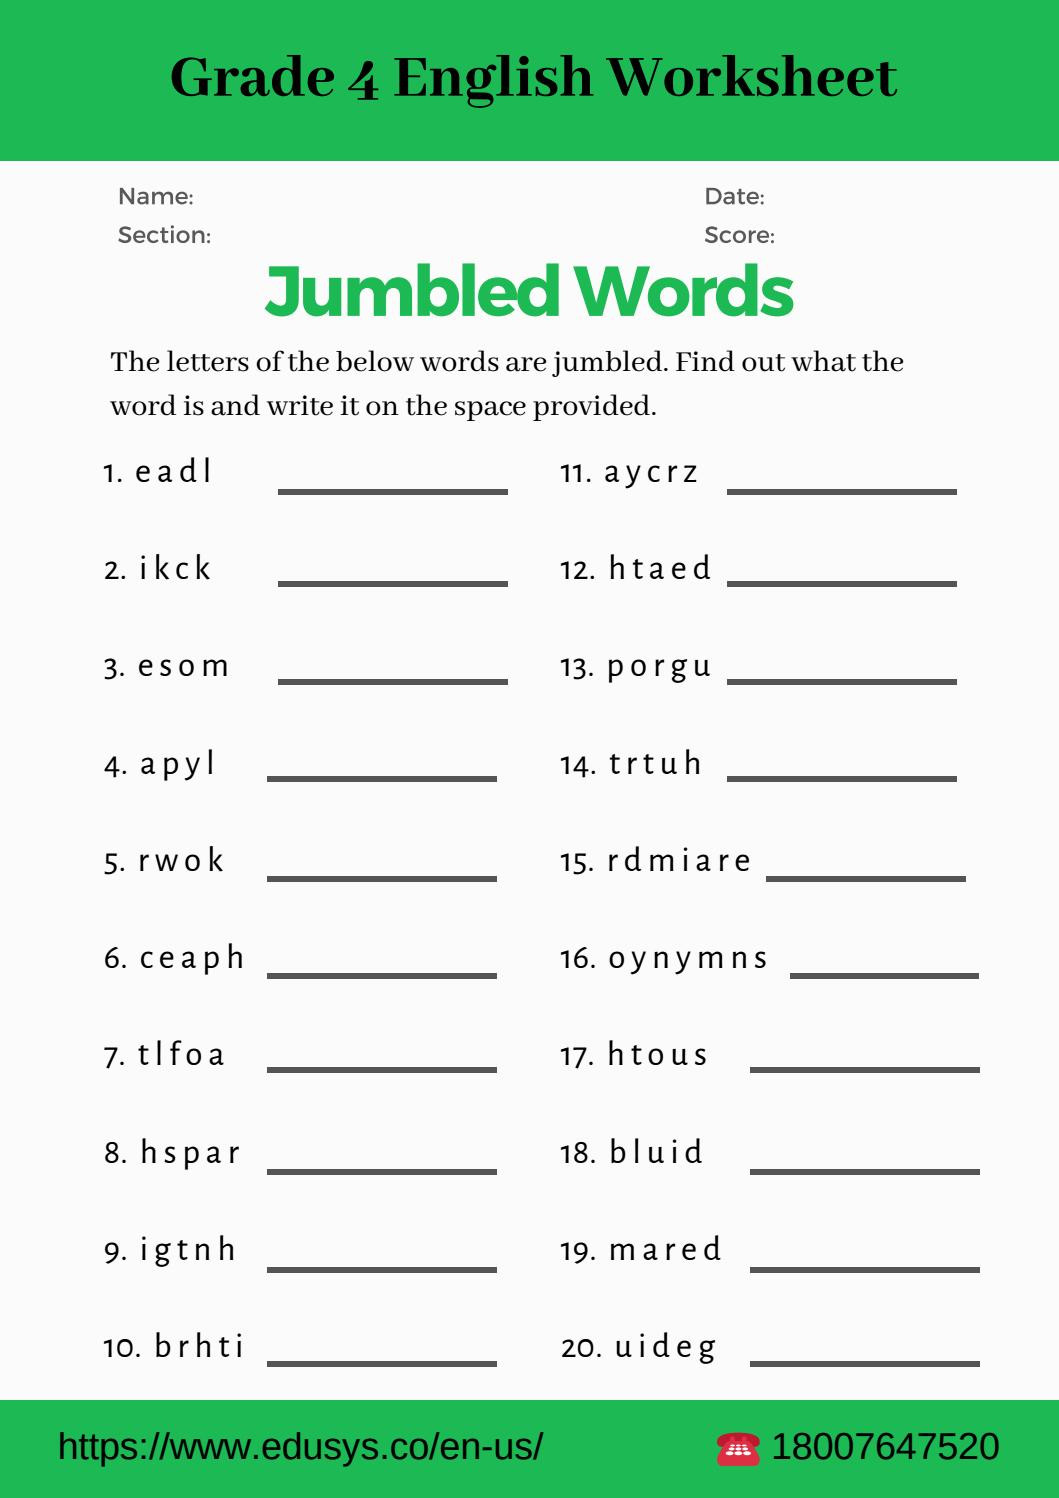 3rd Grade Vocabulary Worksheets Pdf 4th Grade English Vocabulary Worksheet Pdf by Nithya issuu